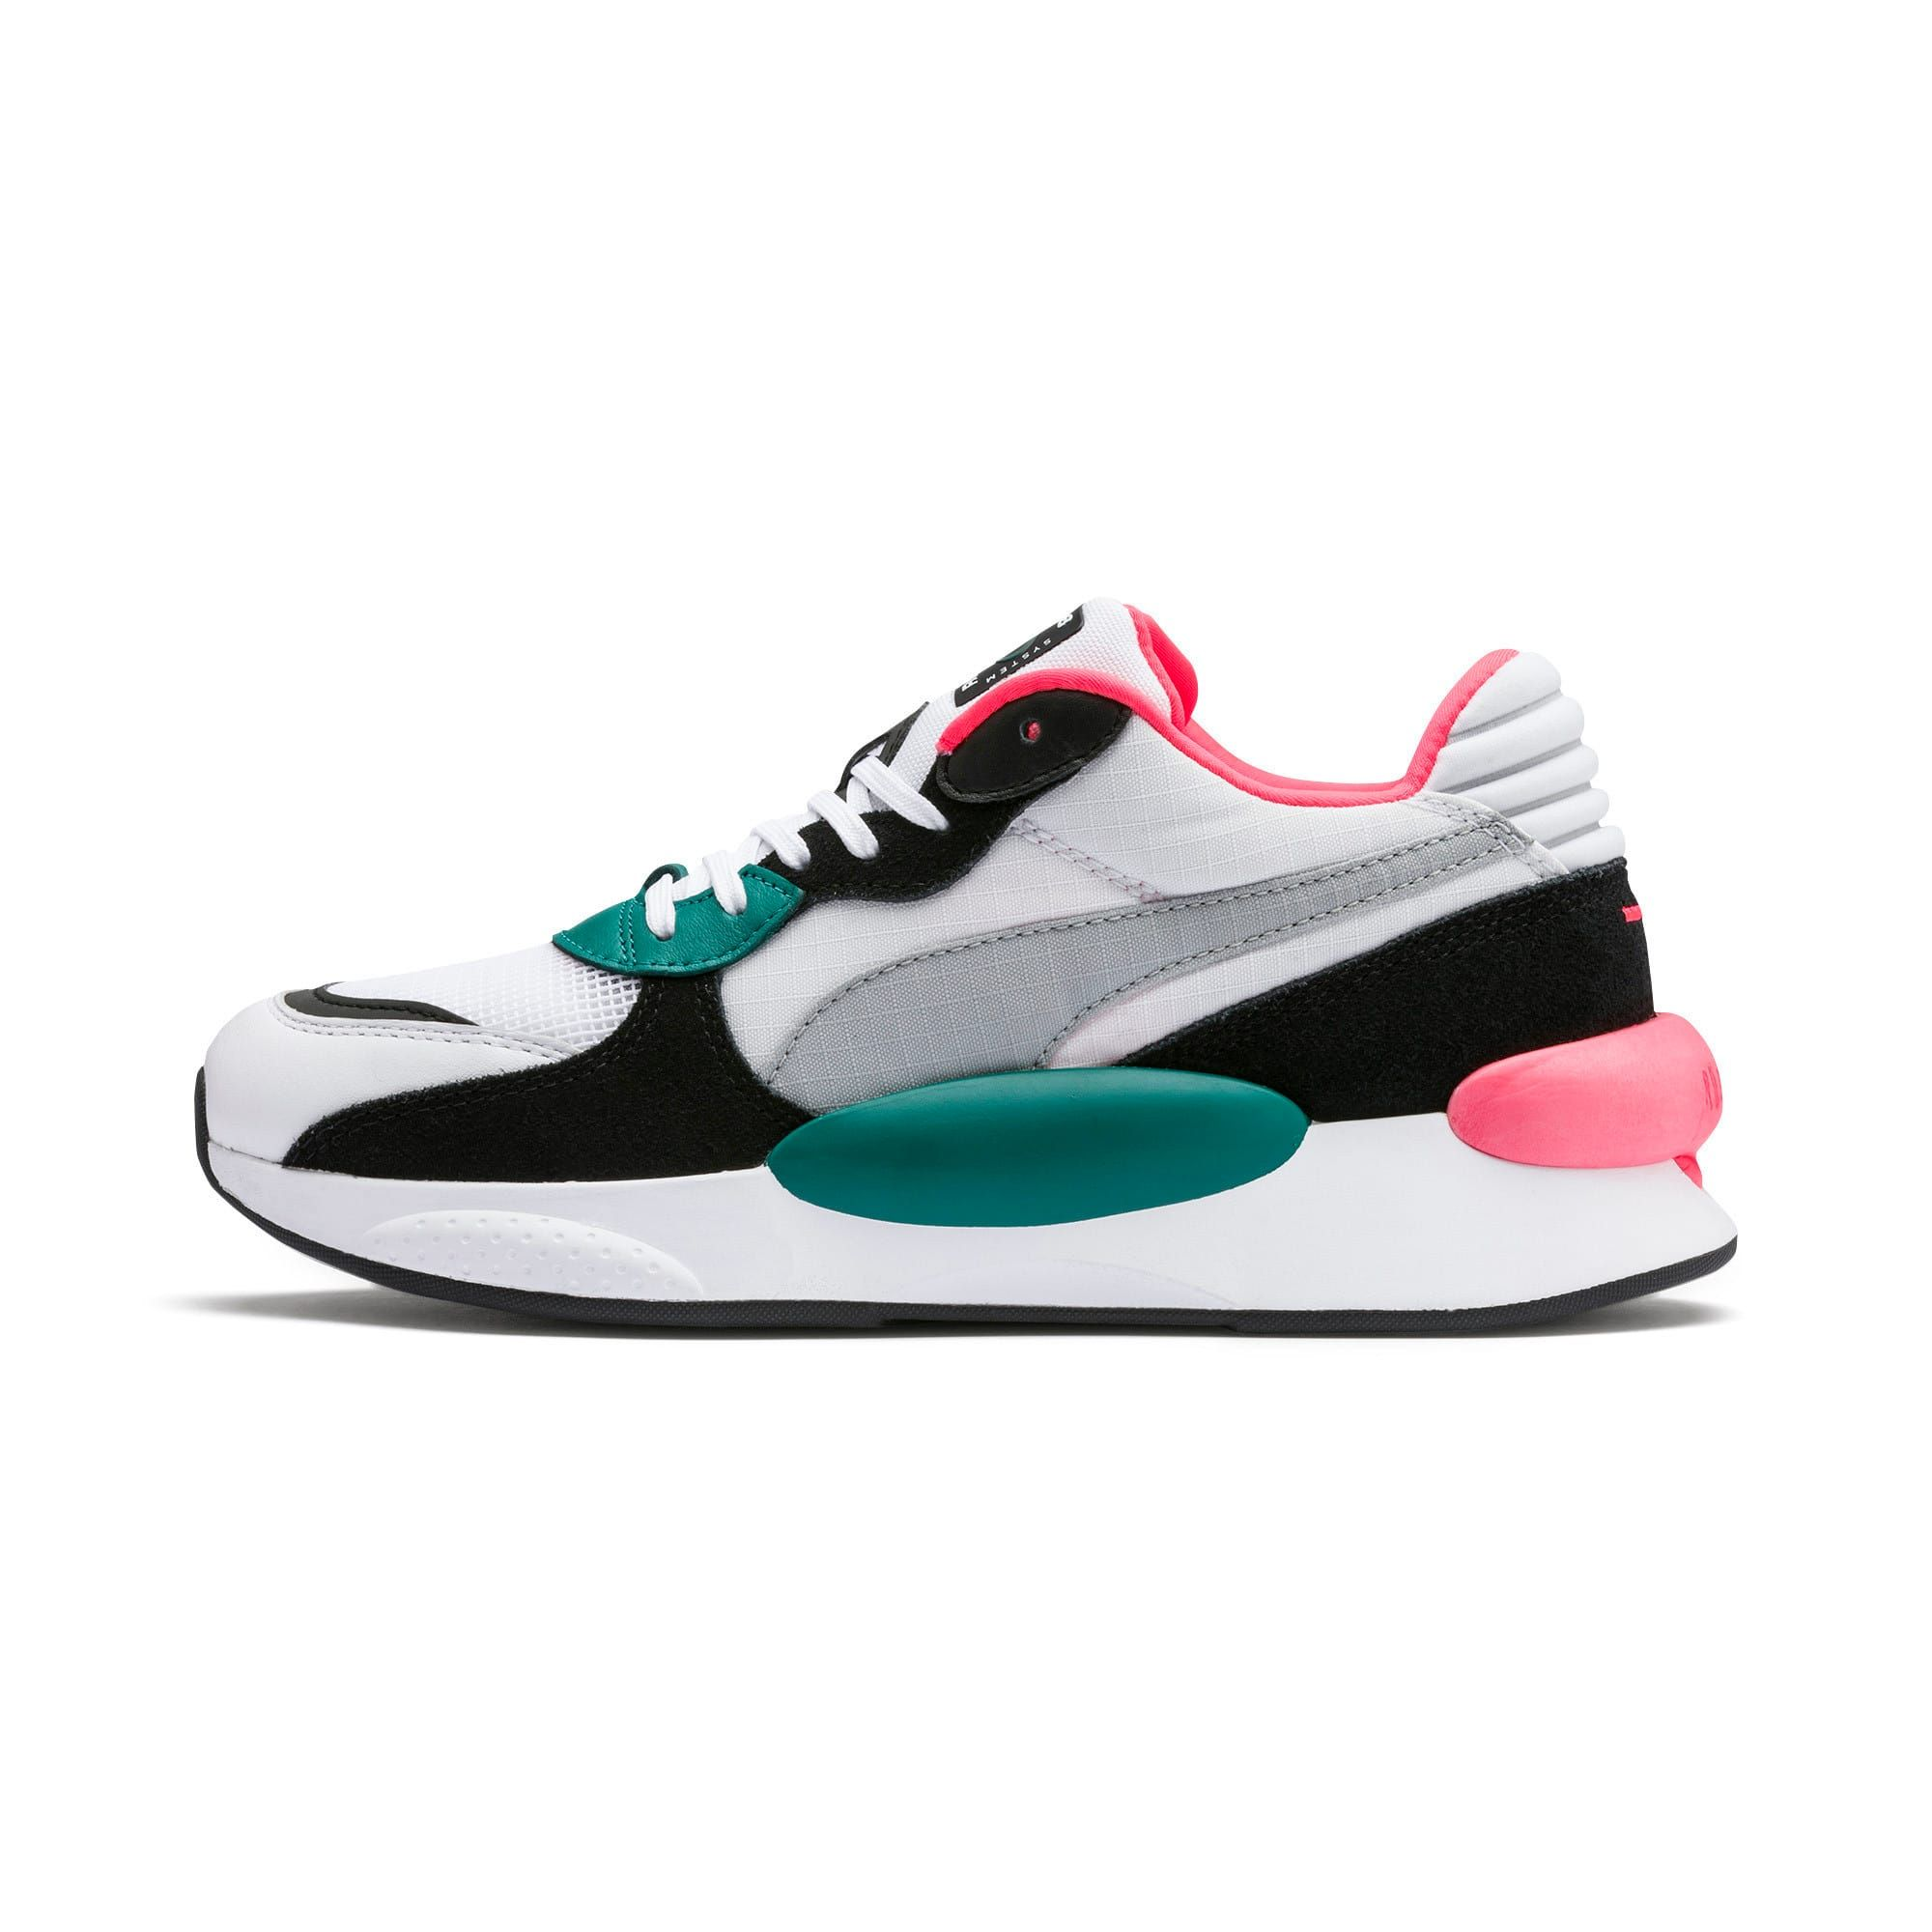 PUMA RS 9.8 Space Trainers in White/Teal Green size 10.5 ...